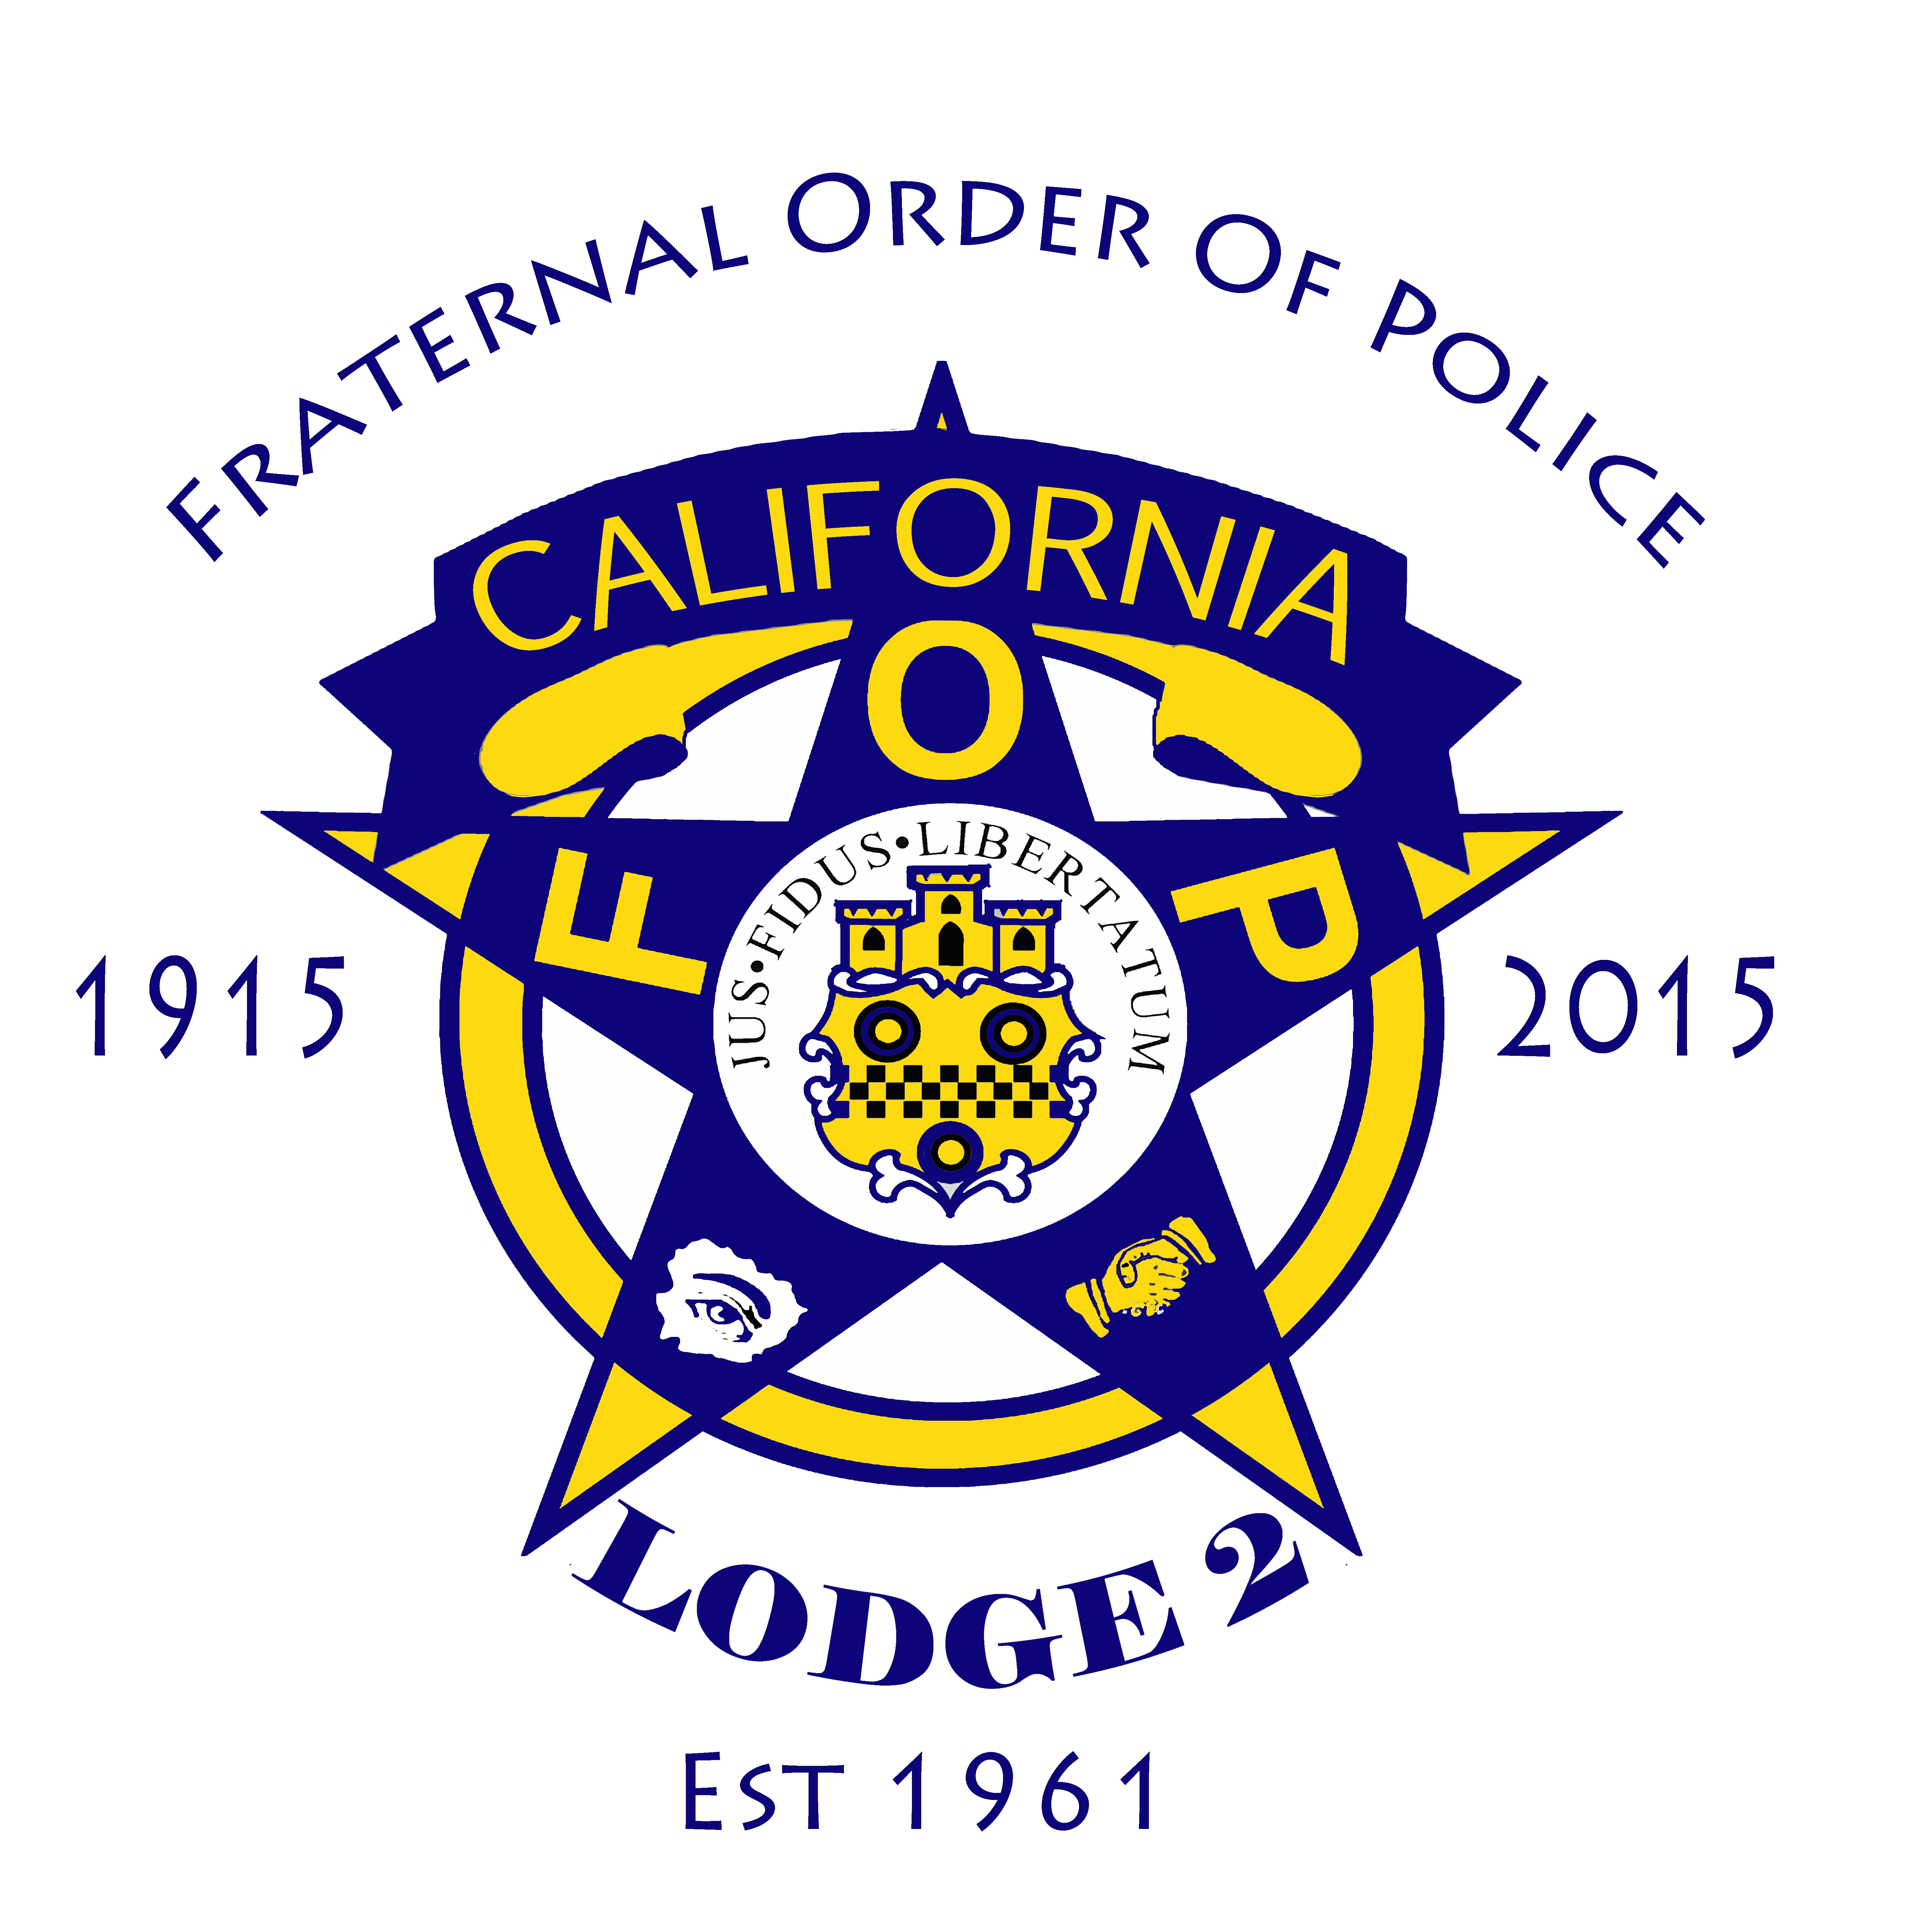 Fraternal order of police california inland empire lodge 2 buycottarizona